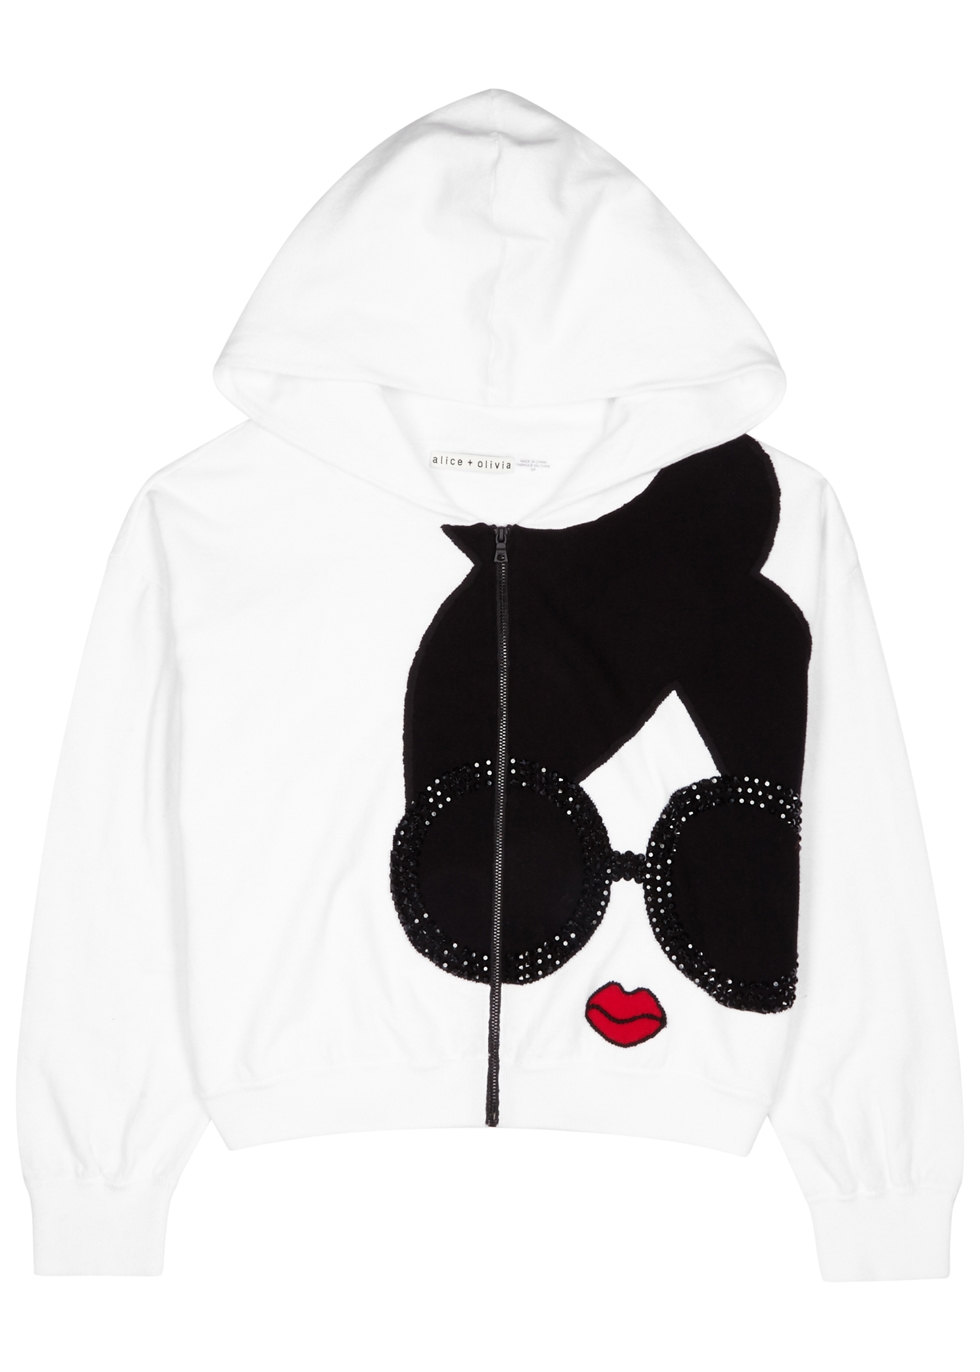 KYLE STACE FACE KNITTED SWEATSHIRT